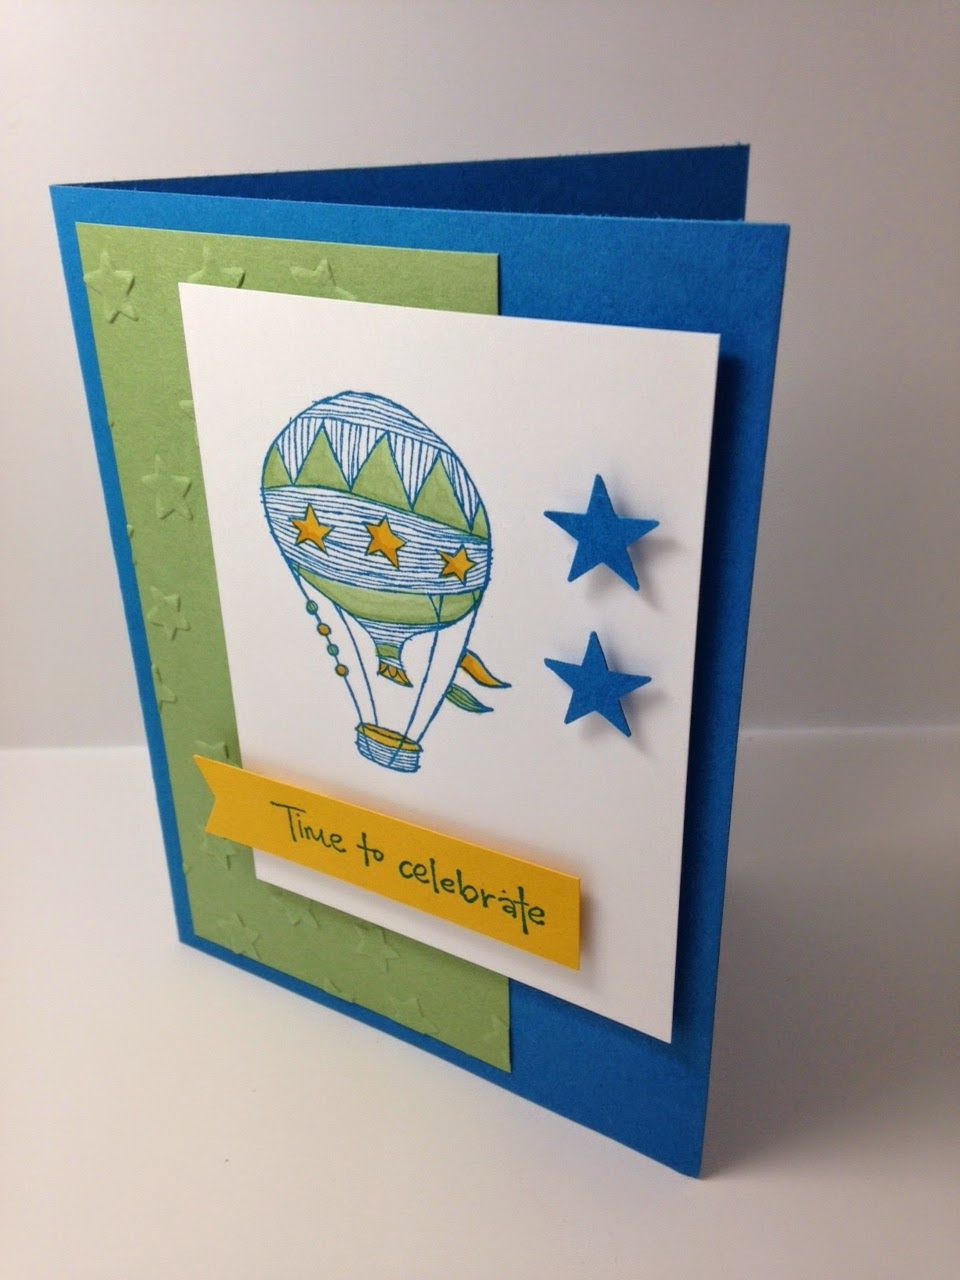 Shell Stamps - Stampin' Up! Hostess set called Time to Celebrate, Itty Bitty Punch pack, Banner Punch, Lucky Stars Embossing folder.  Please see blog for details: http://shellsq.blogspot.com/2015/04/balloons.html